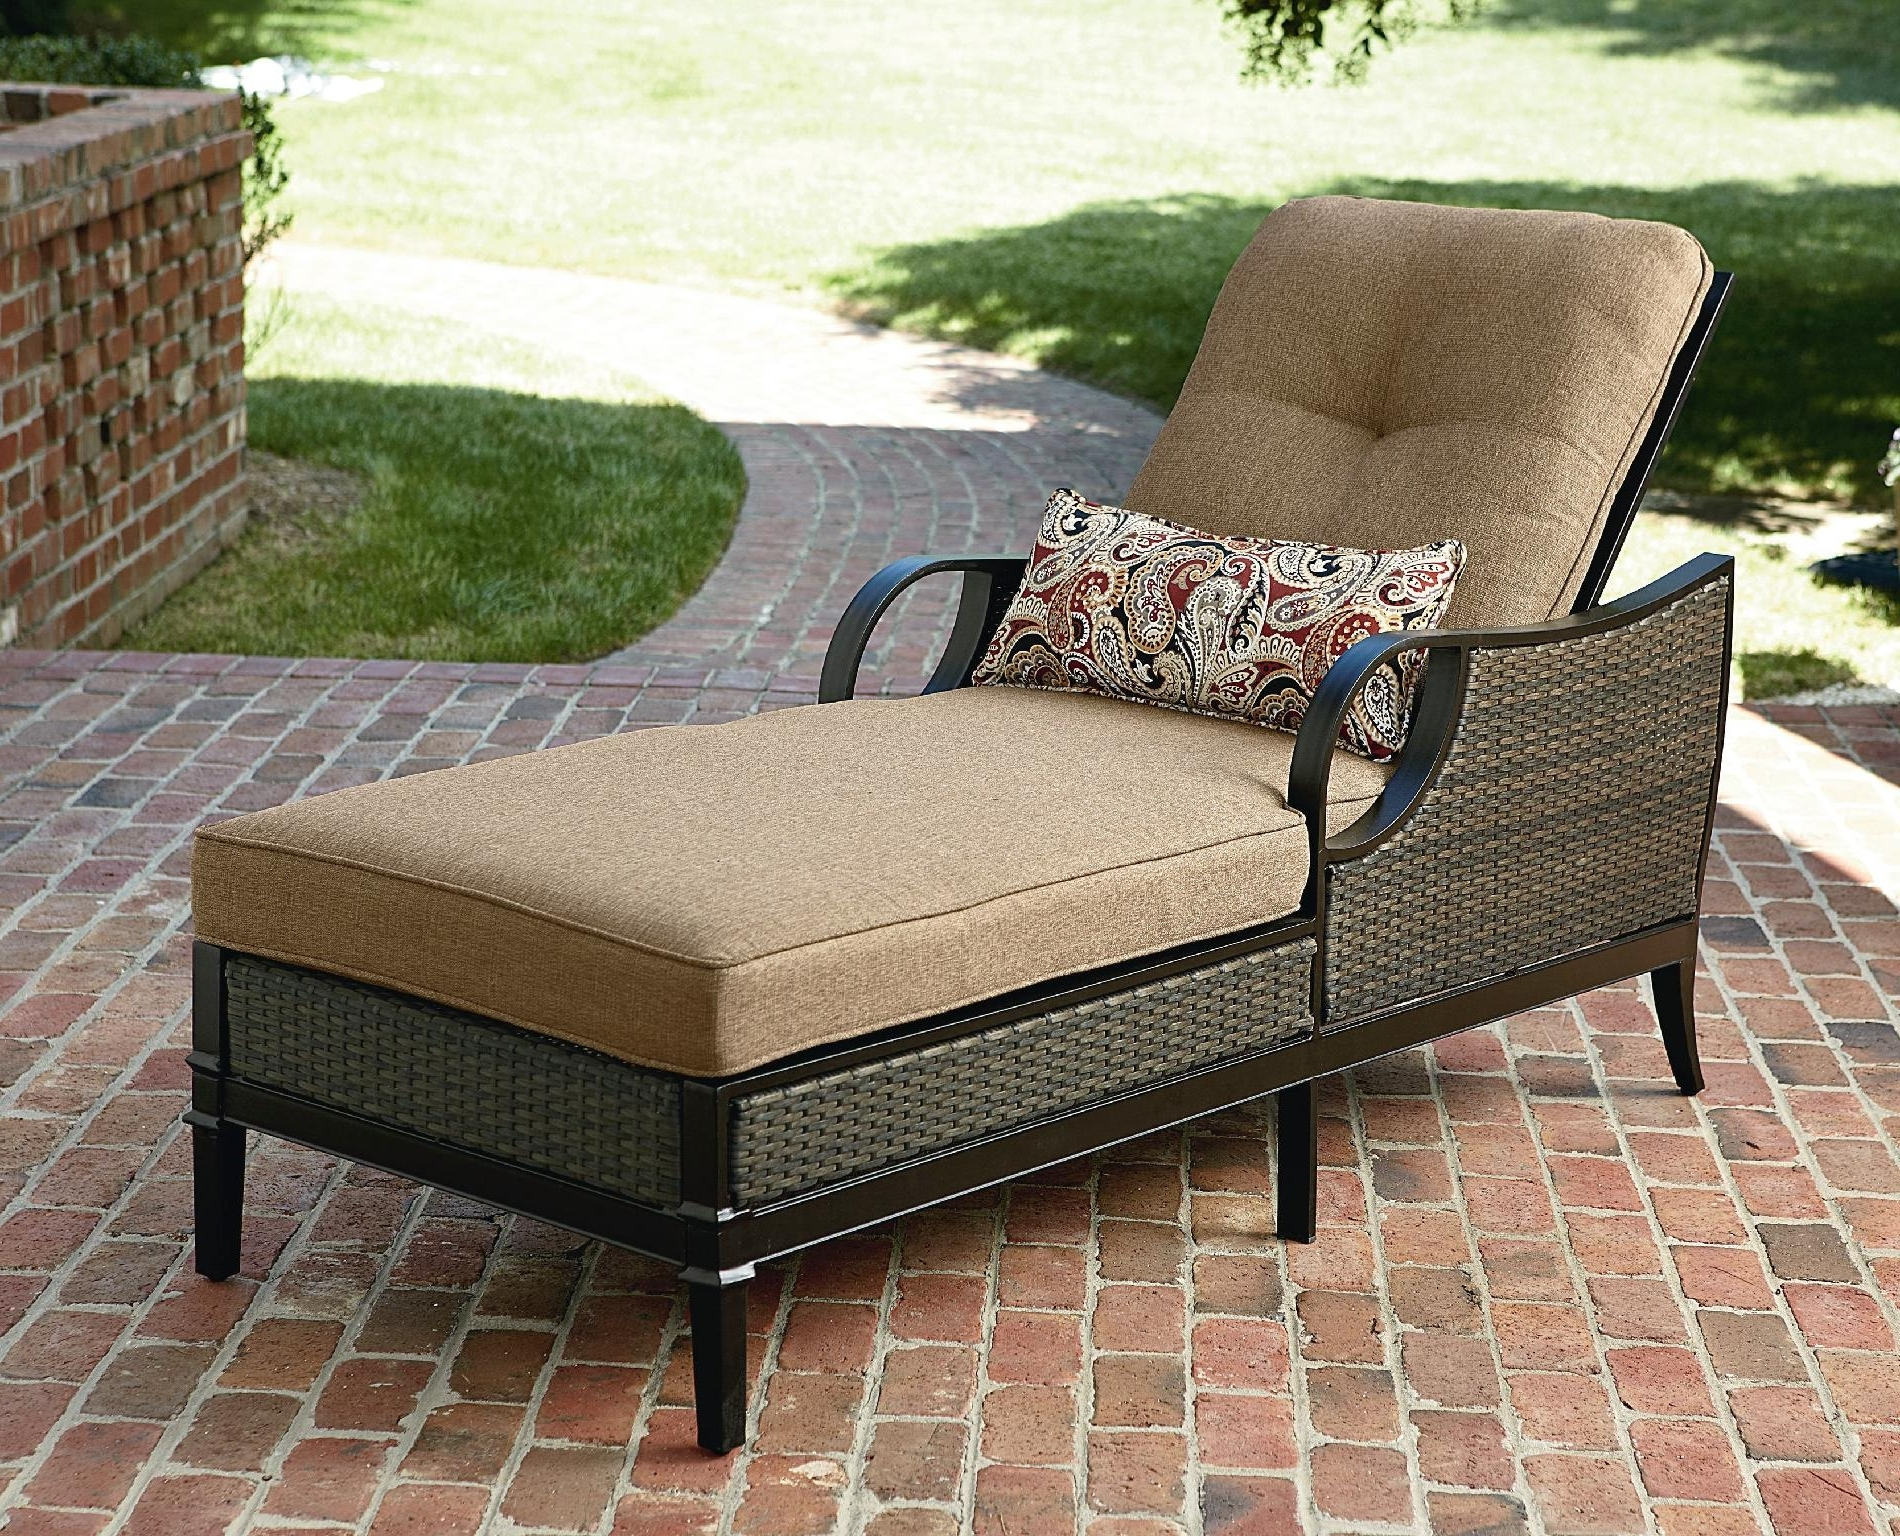 Deck Chaise Lounge Chairs Within Most Current Chaise Lounge Chairs For Patio • Lounge Chairs Ideas (View 4 of 15)